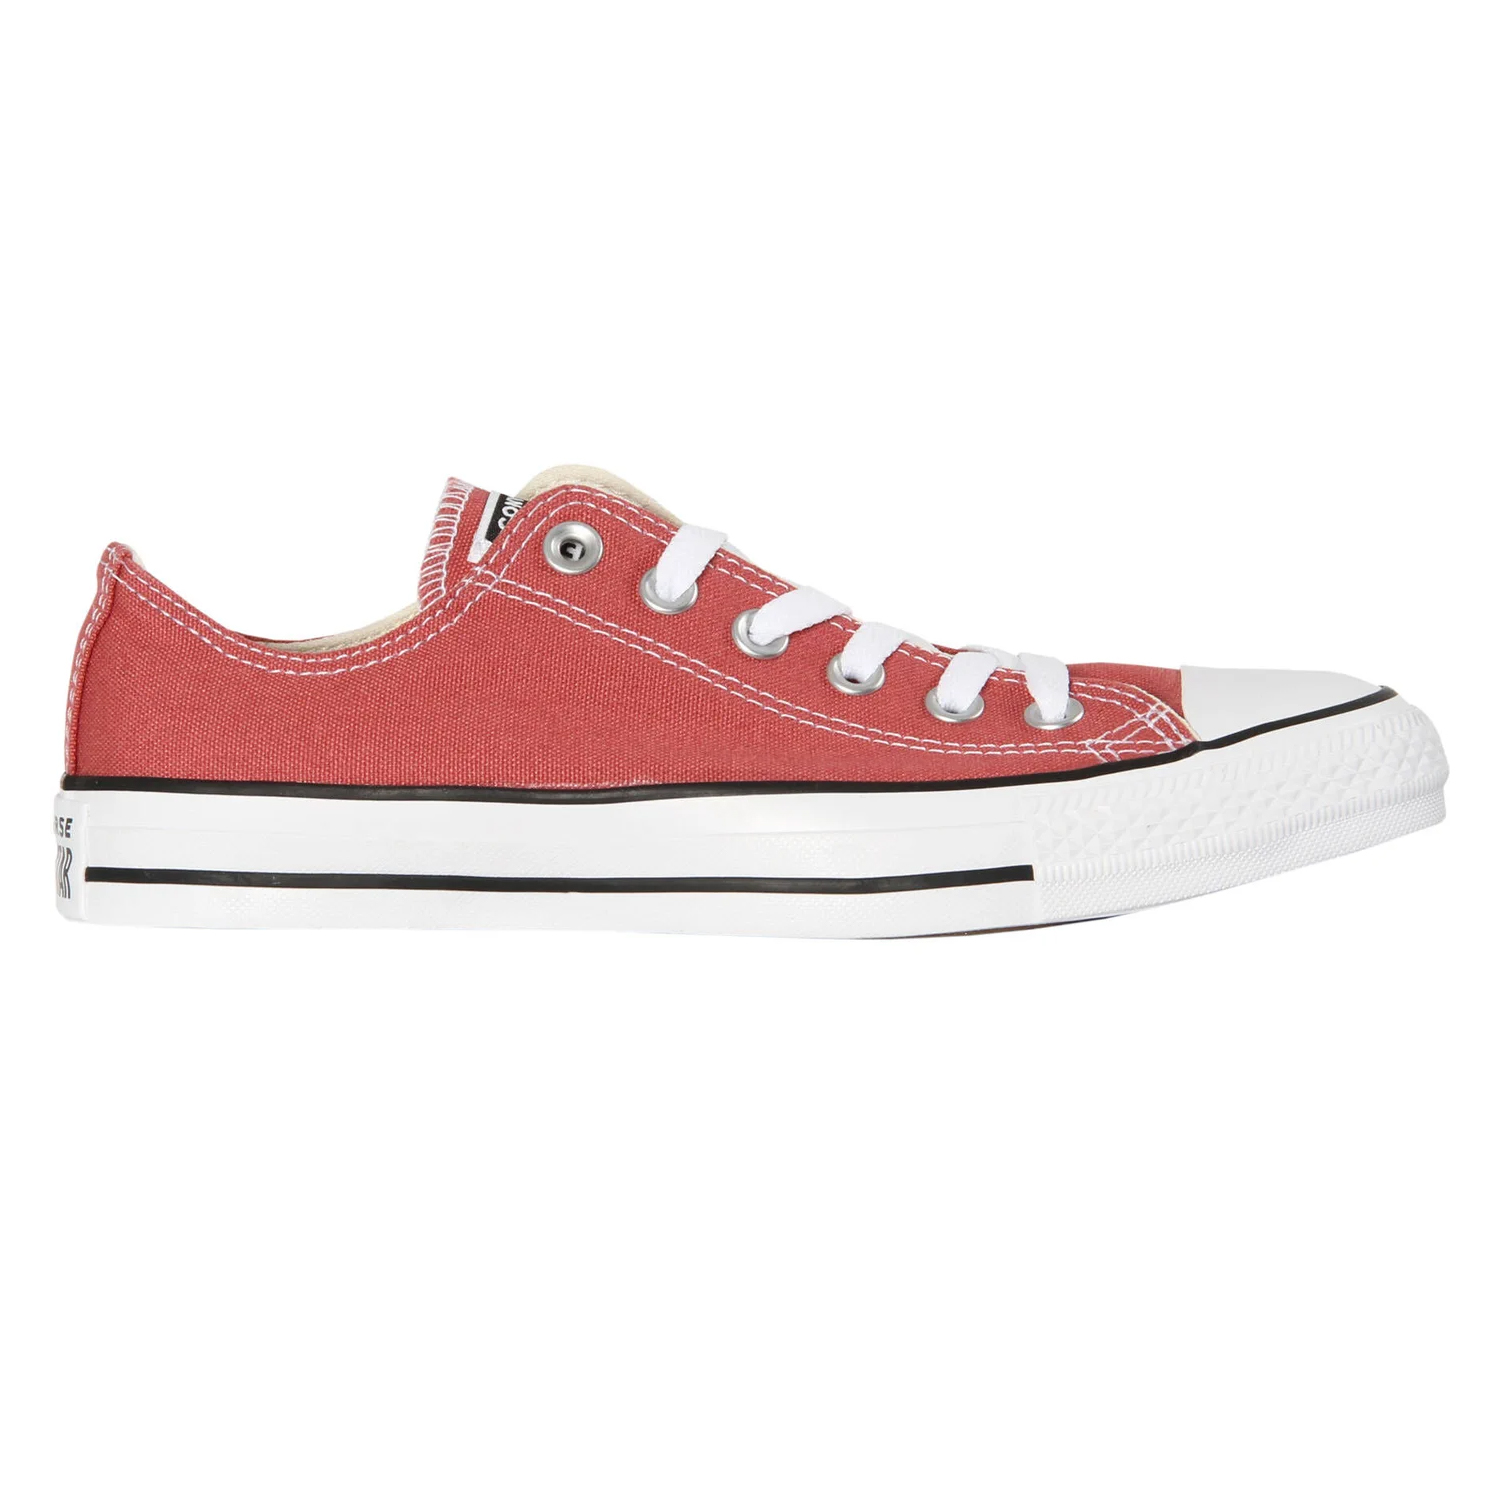 Converse CT AS OX Chuck Taylor All Star light redwood 164935C